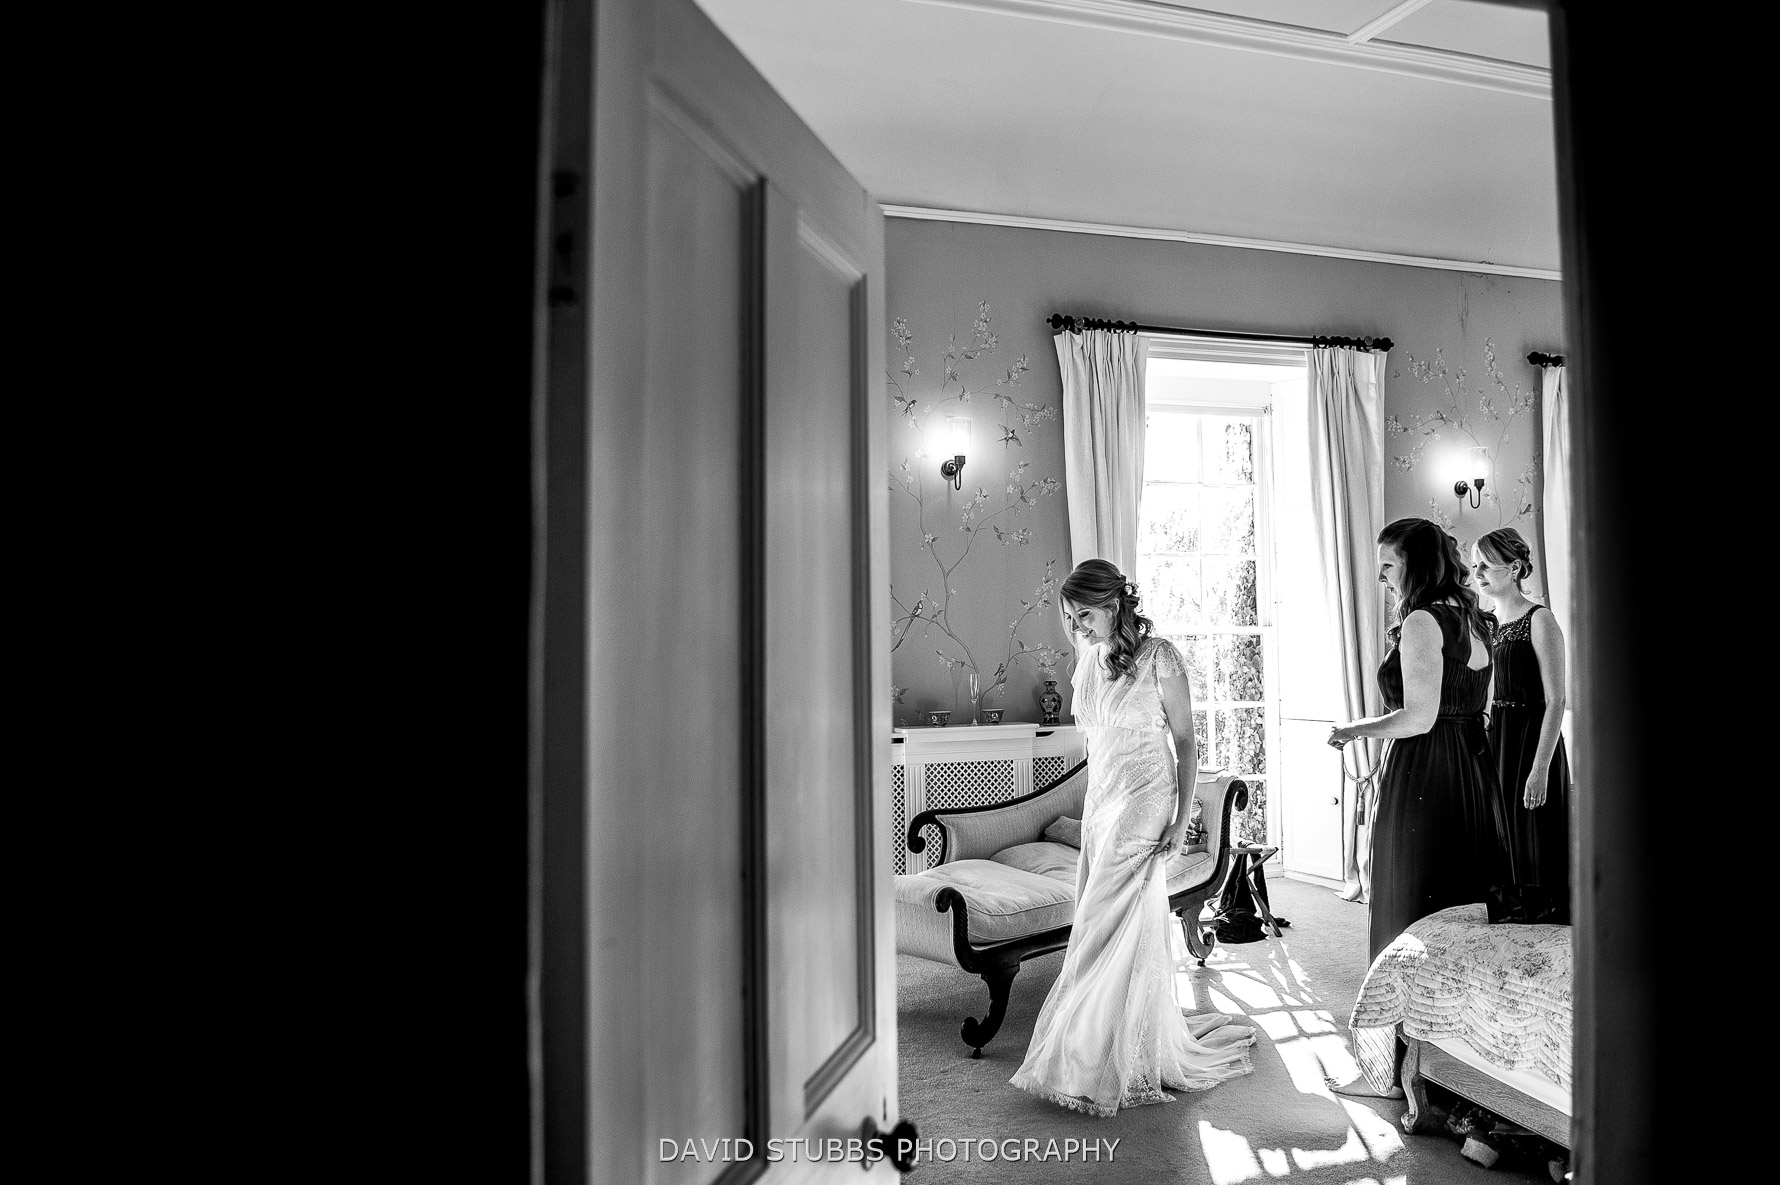 getting in her dress before marriage